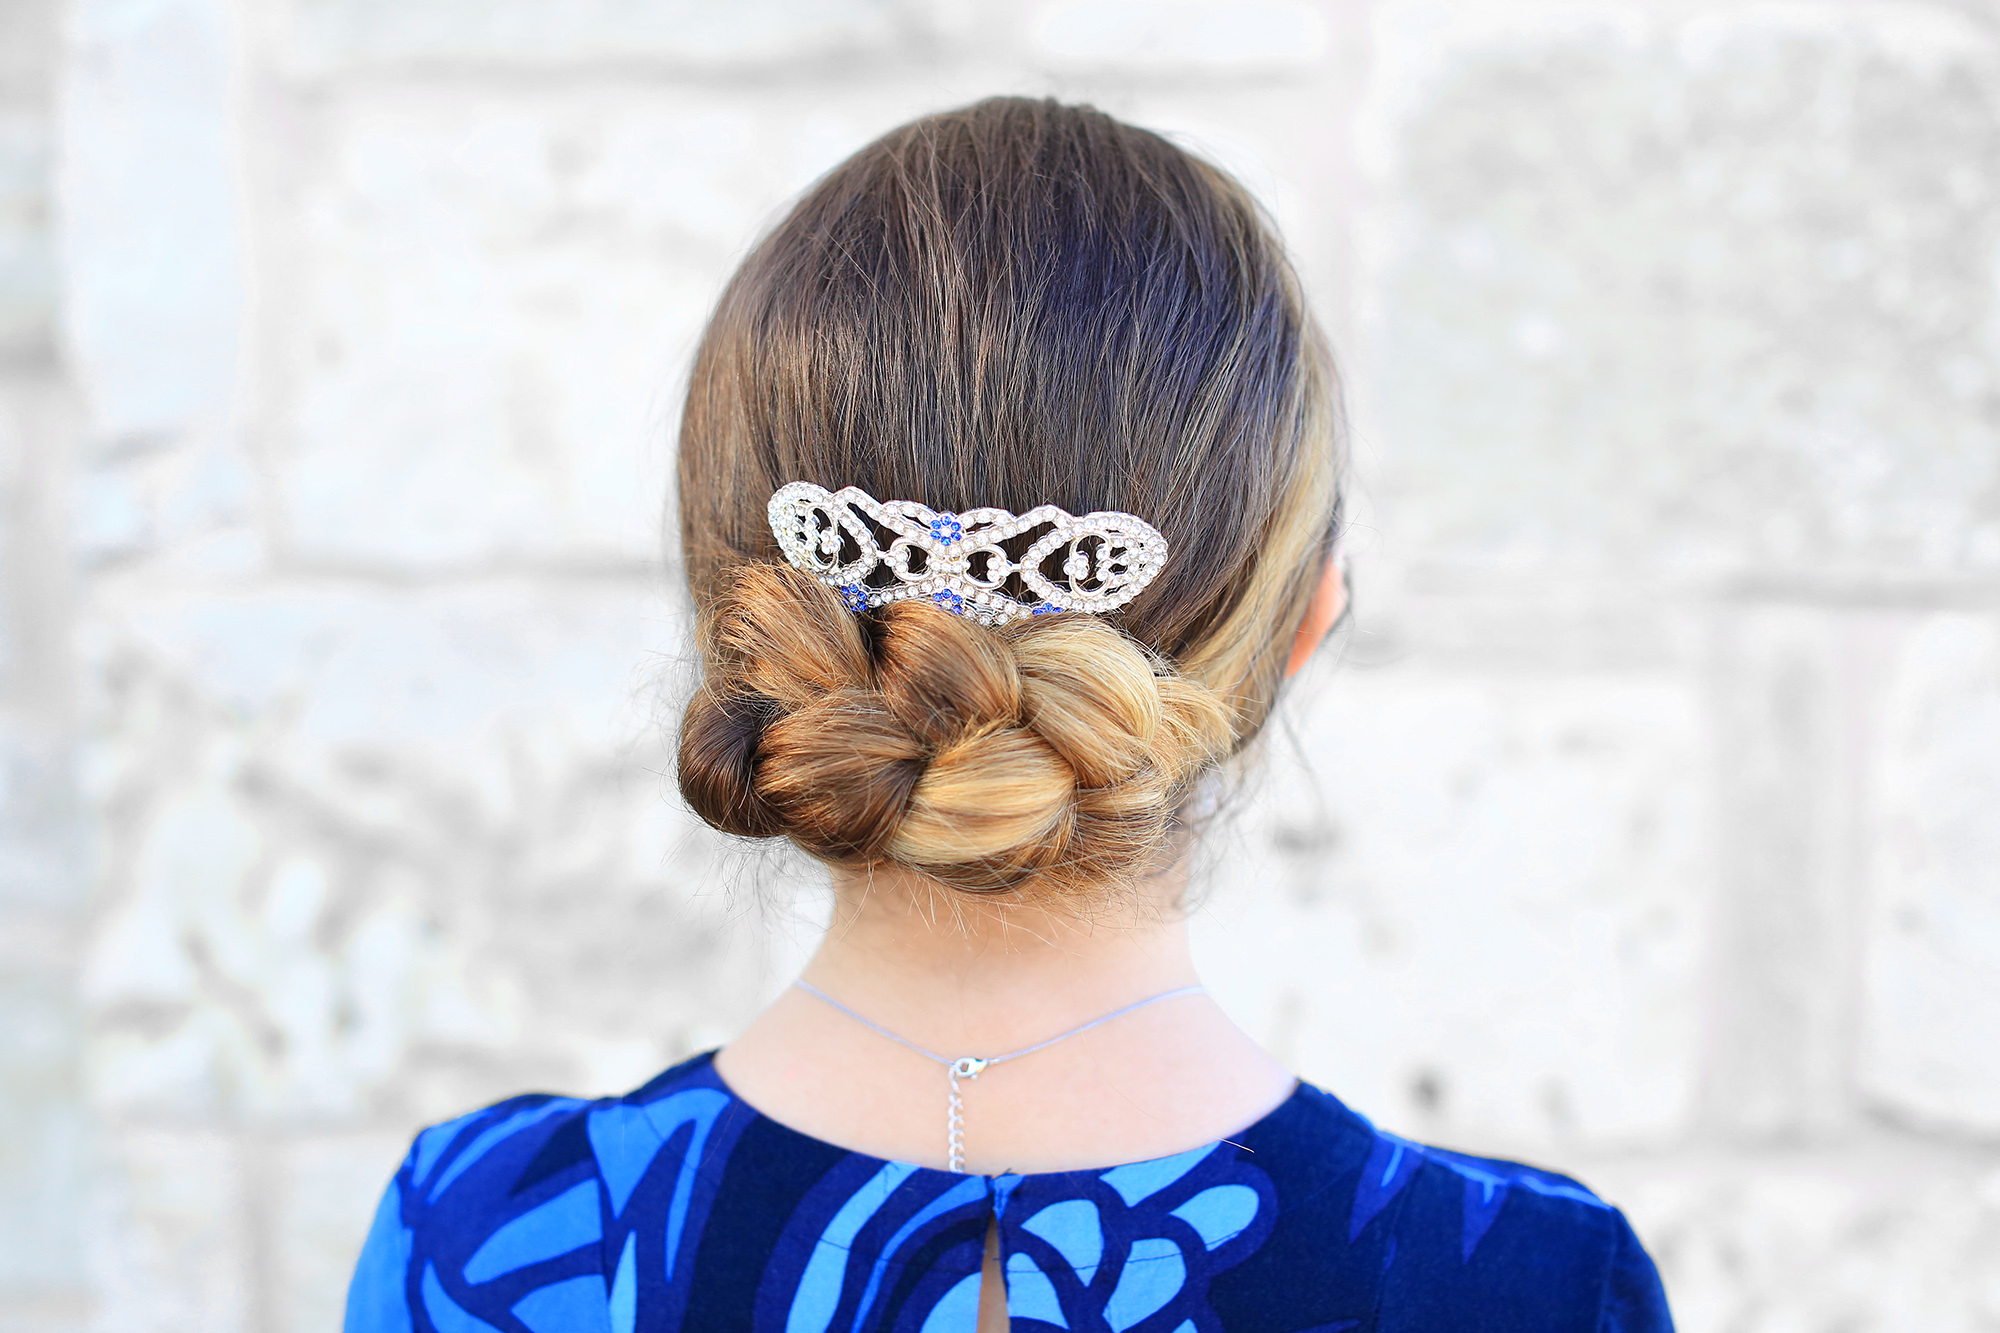 The Flipped Braid Updo